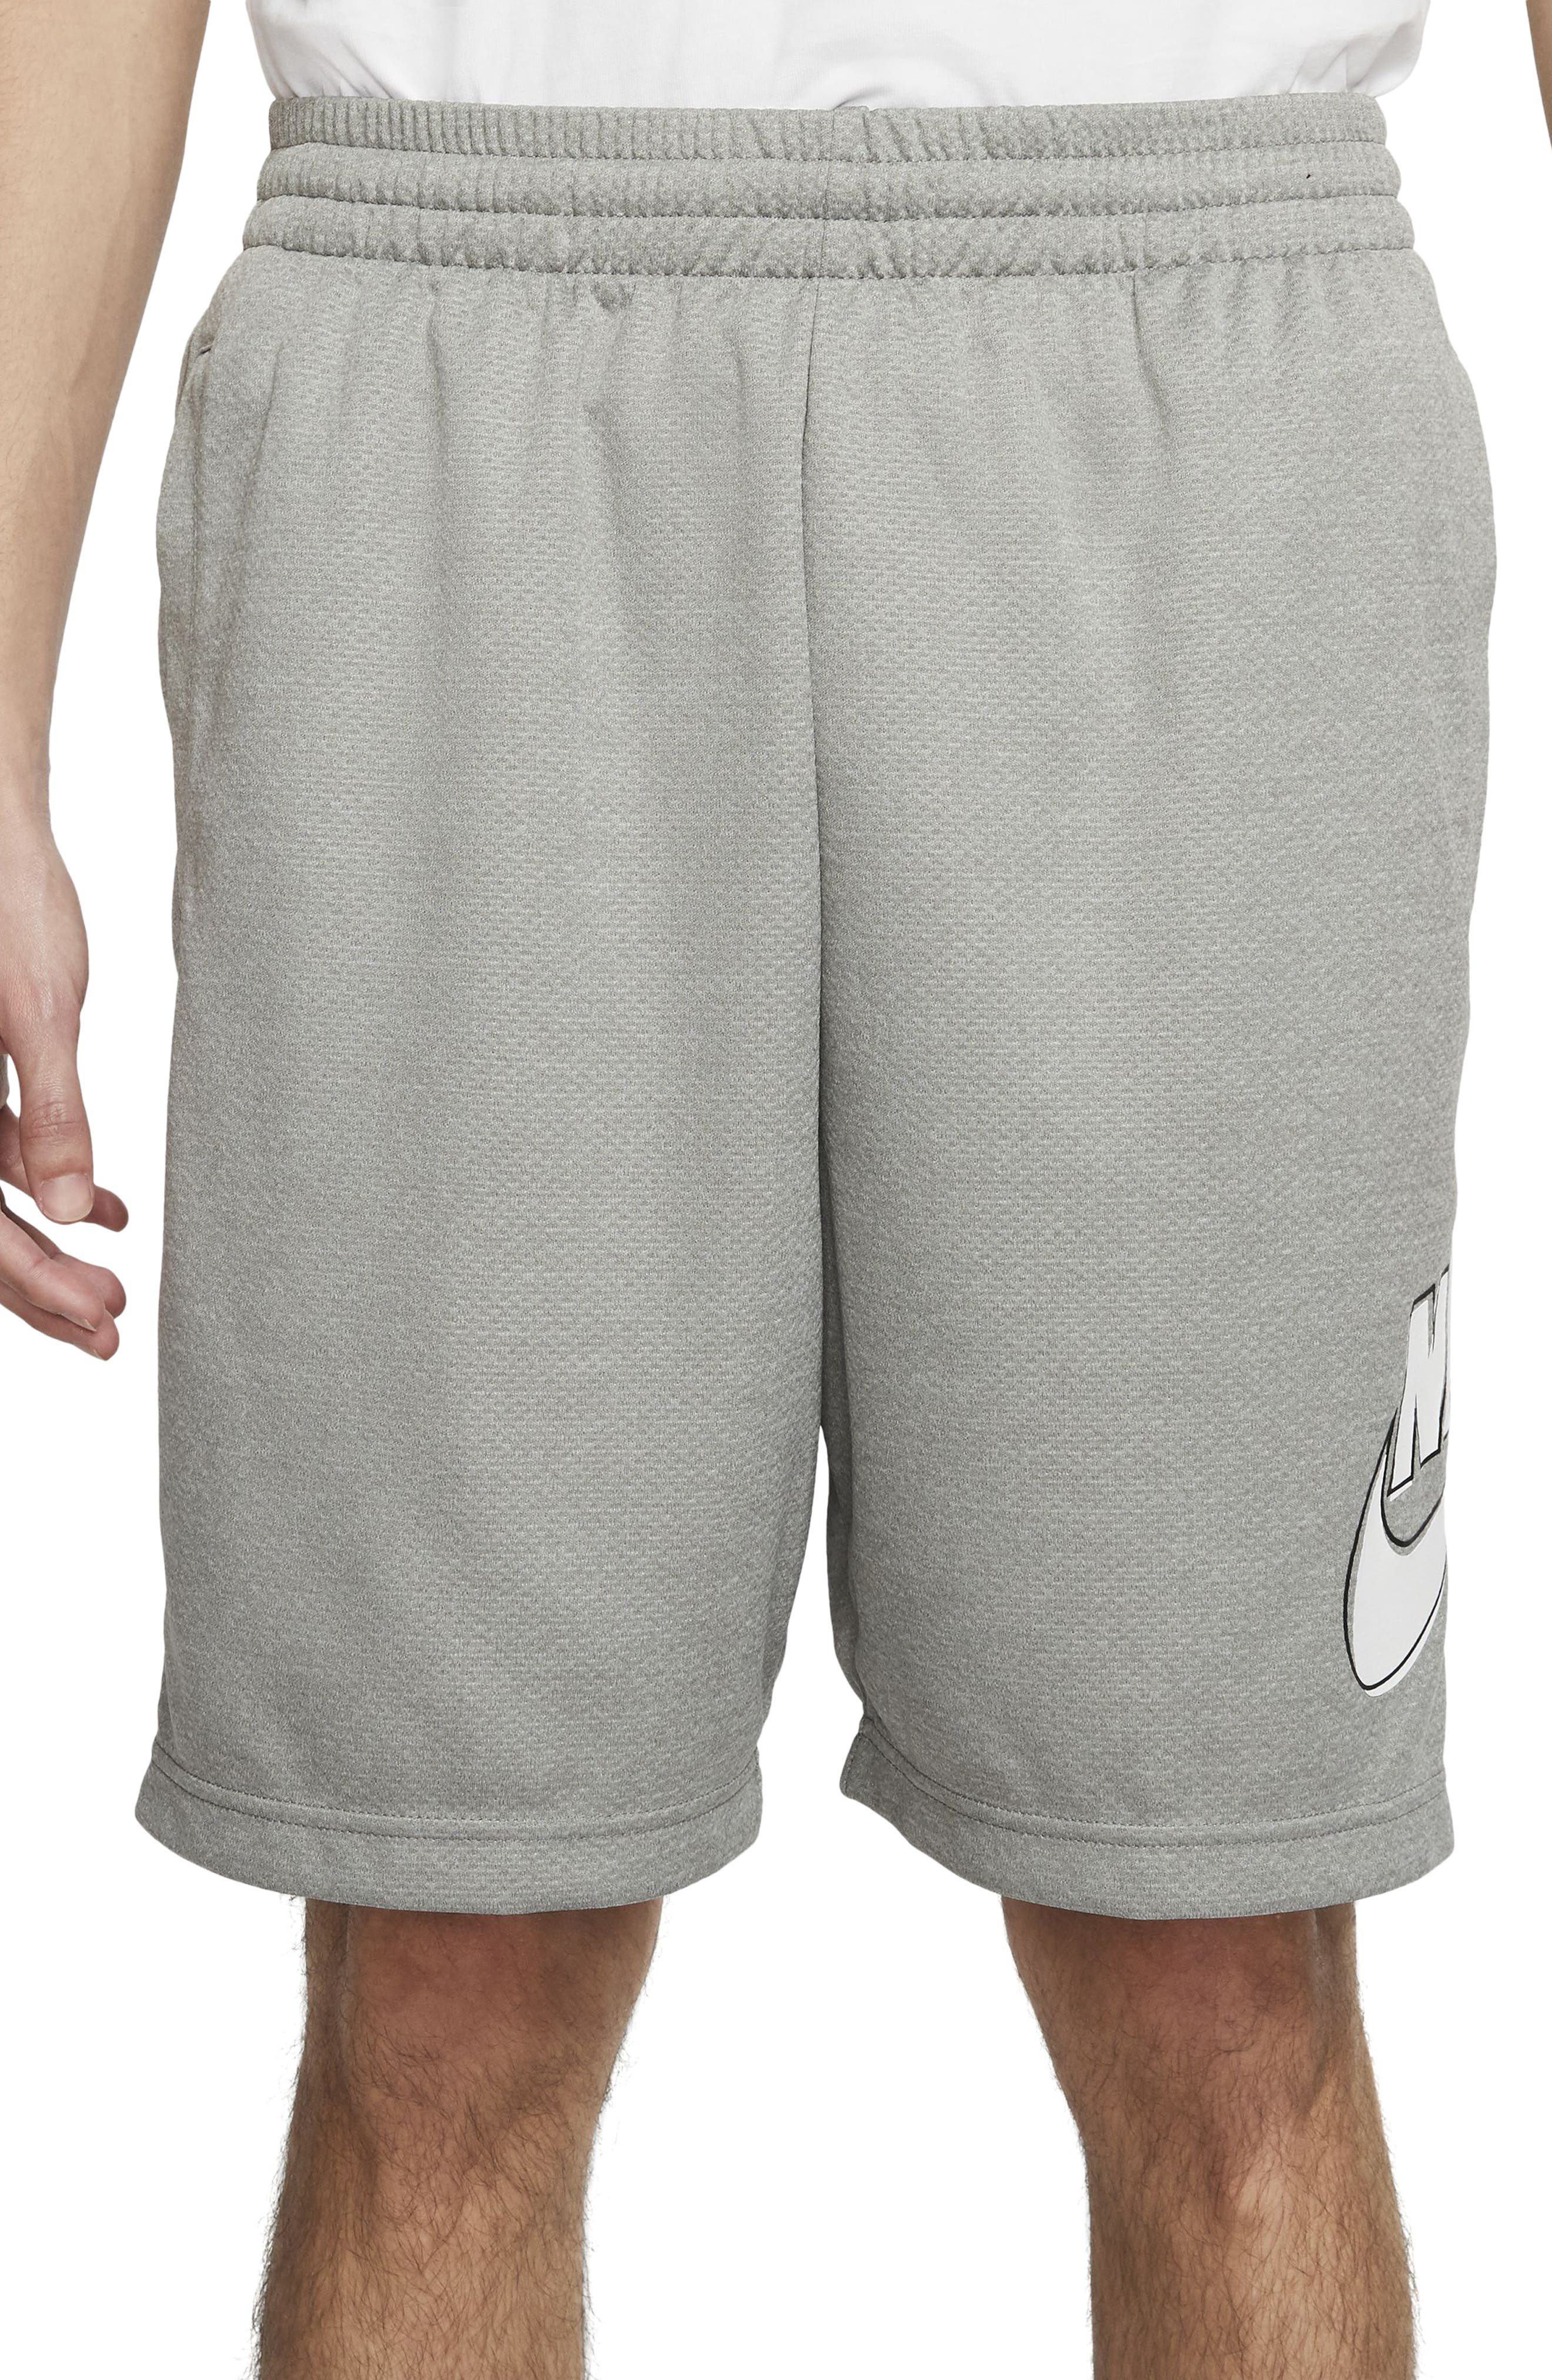 The sweat-wicking fabric of these shorts keeps you dry all day while the adjustable waistband lets you secure the fit whether you\\\'re on the go or laying low. Style Name: Nike Sb Sunday Dri-Fit Skate Shorts. Style Number: 5901209. Available in stores.